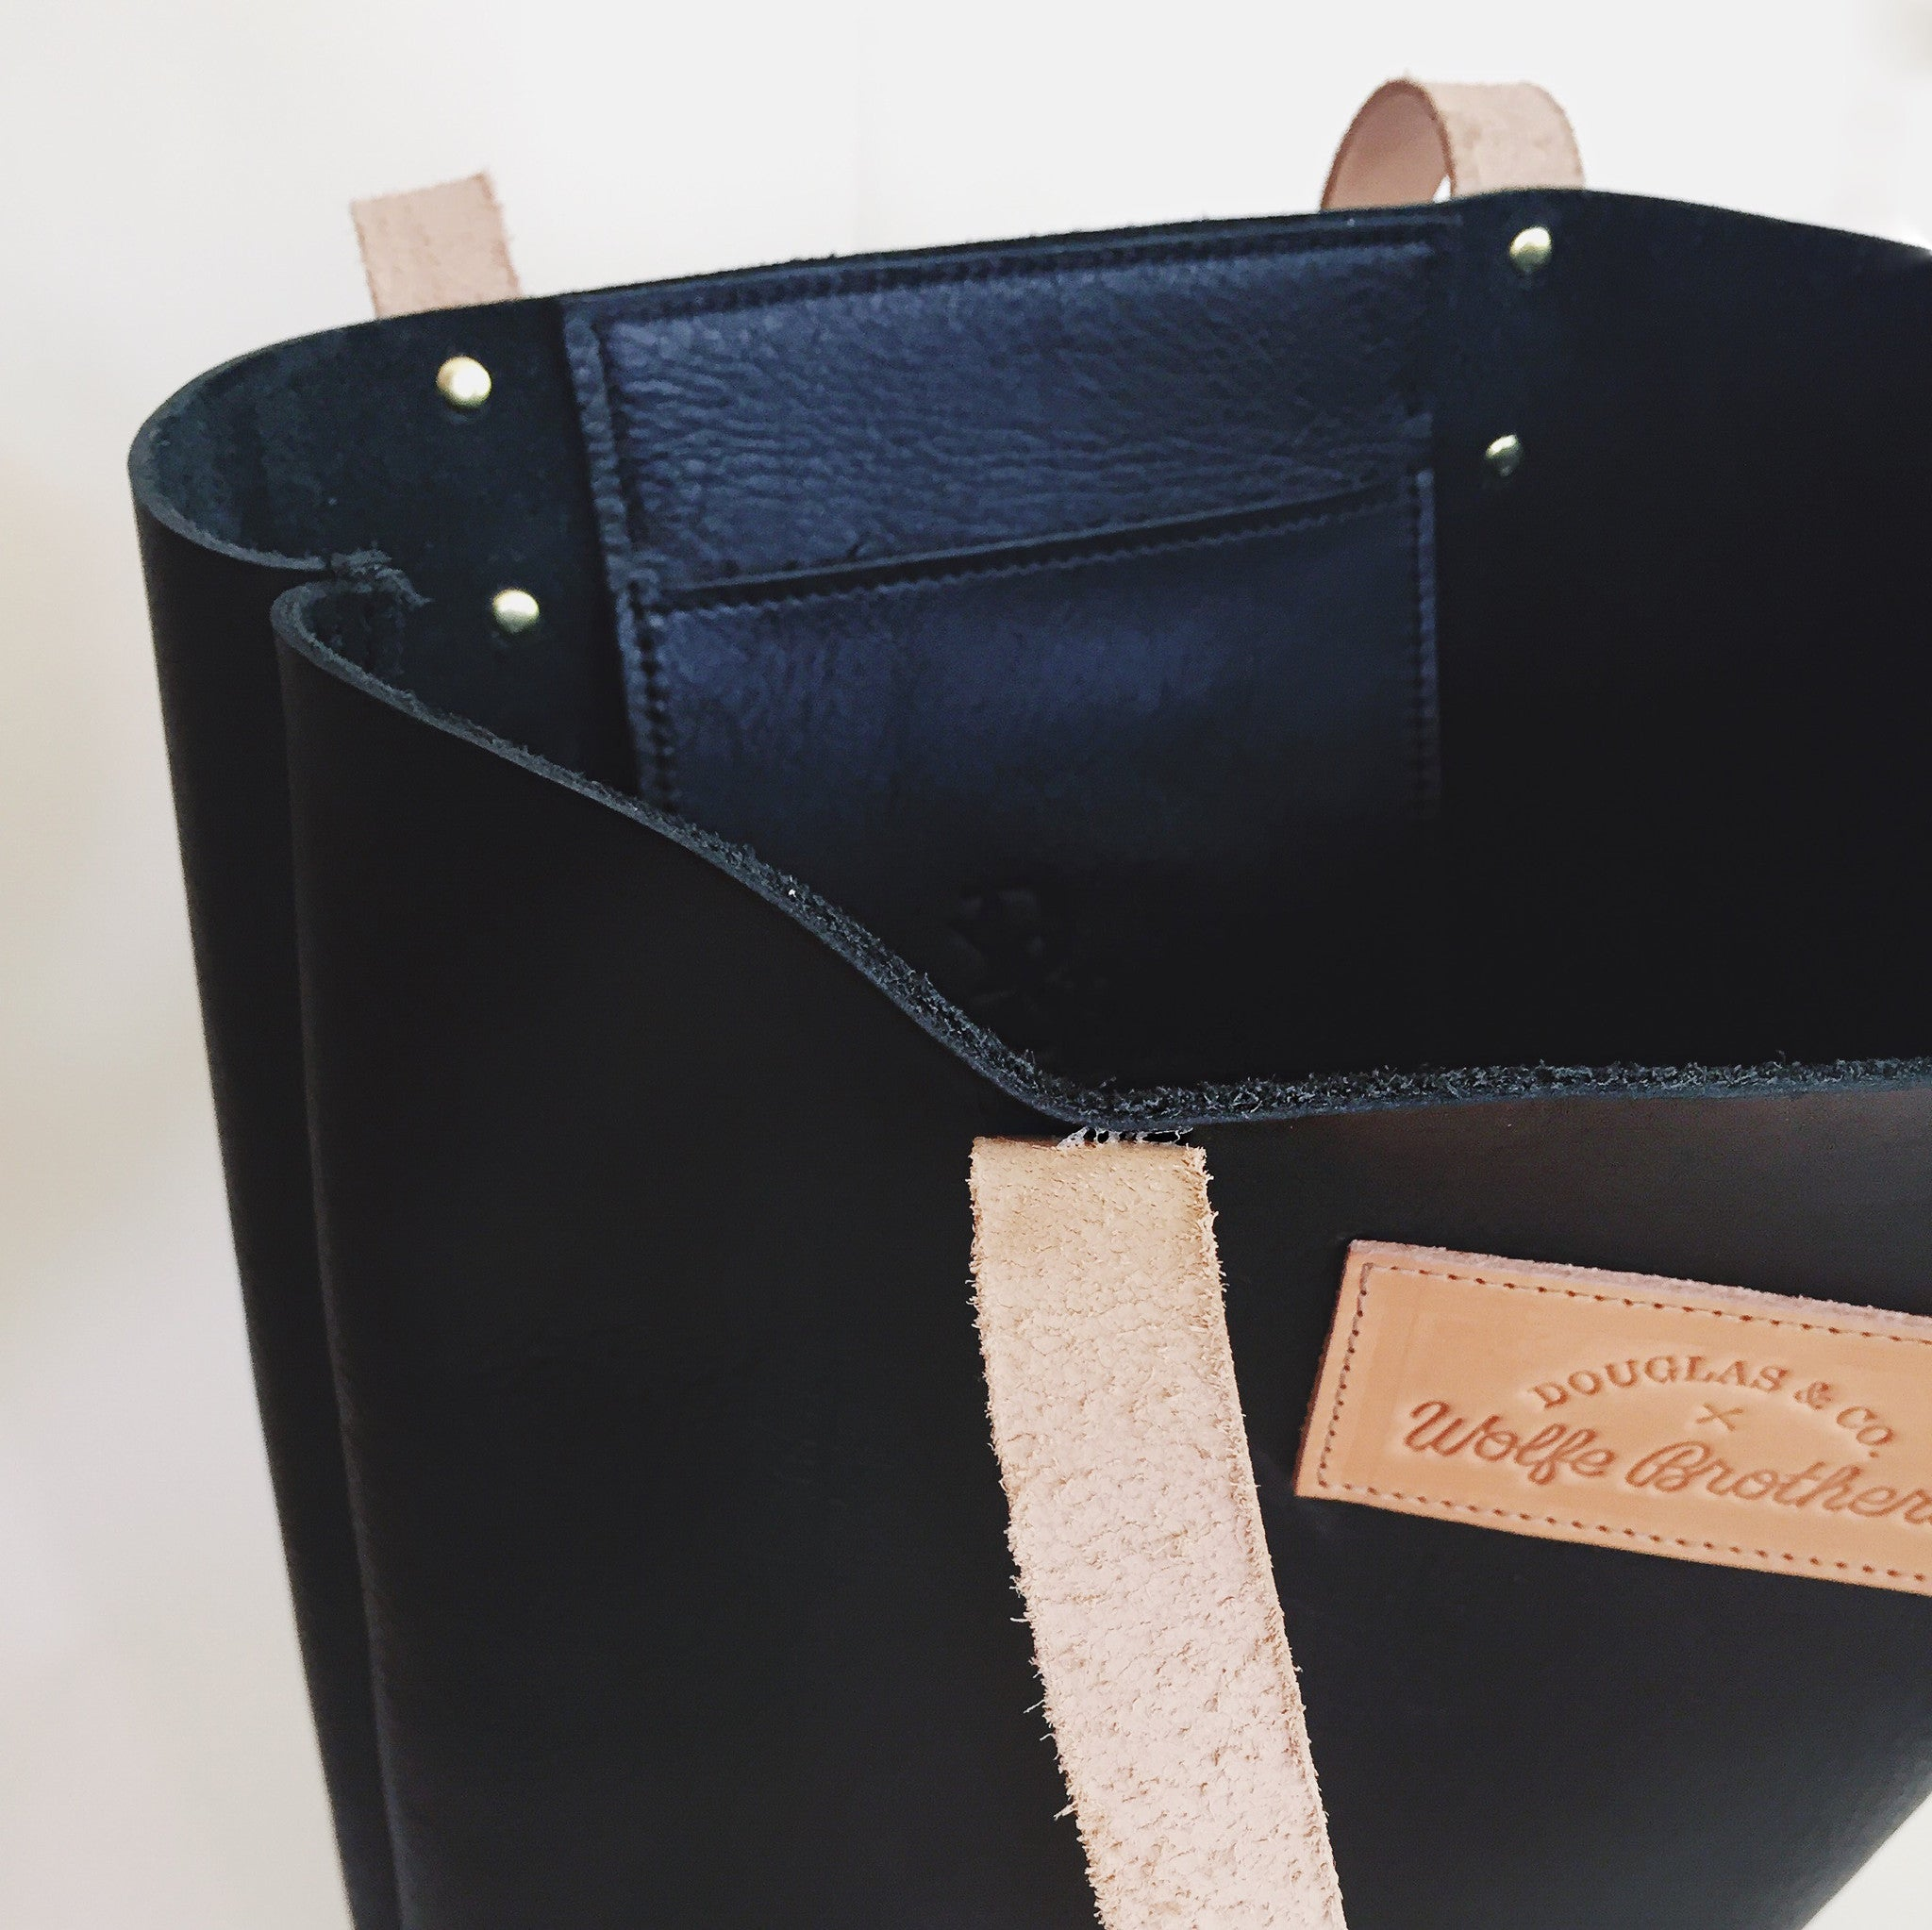 Heirloom Leather Tote